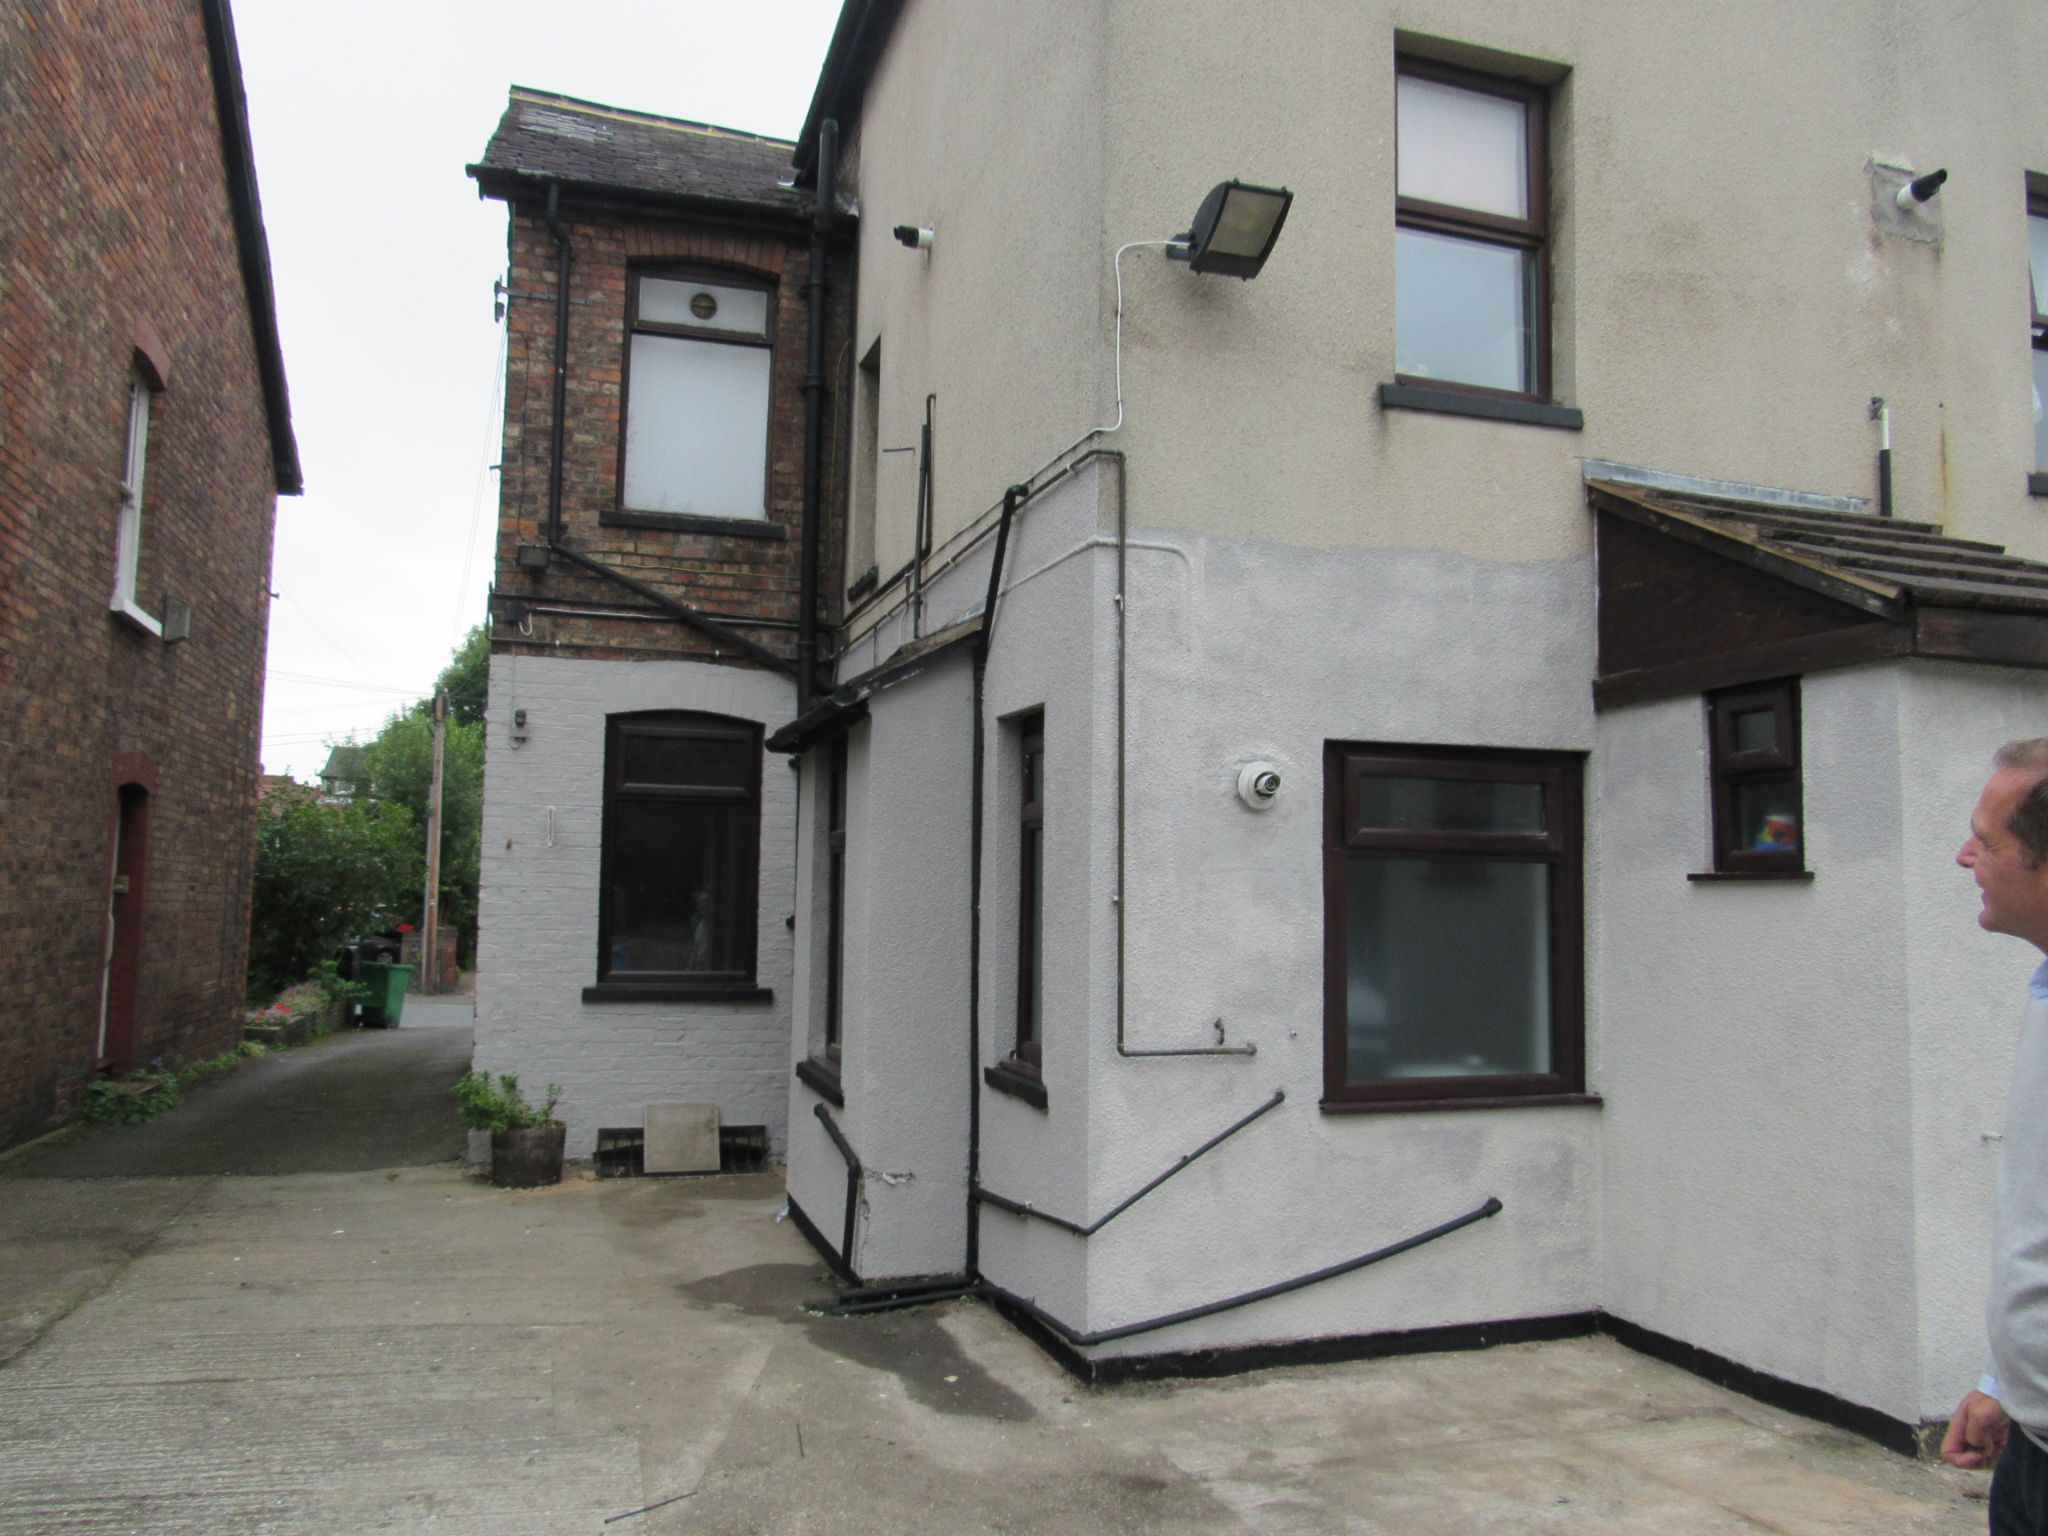 2 bedroom flat flat/apartment Let in Manchester - Photograph 7.